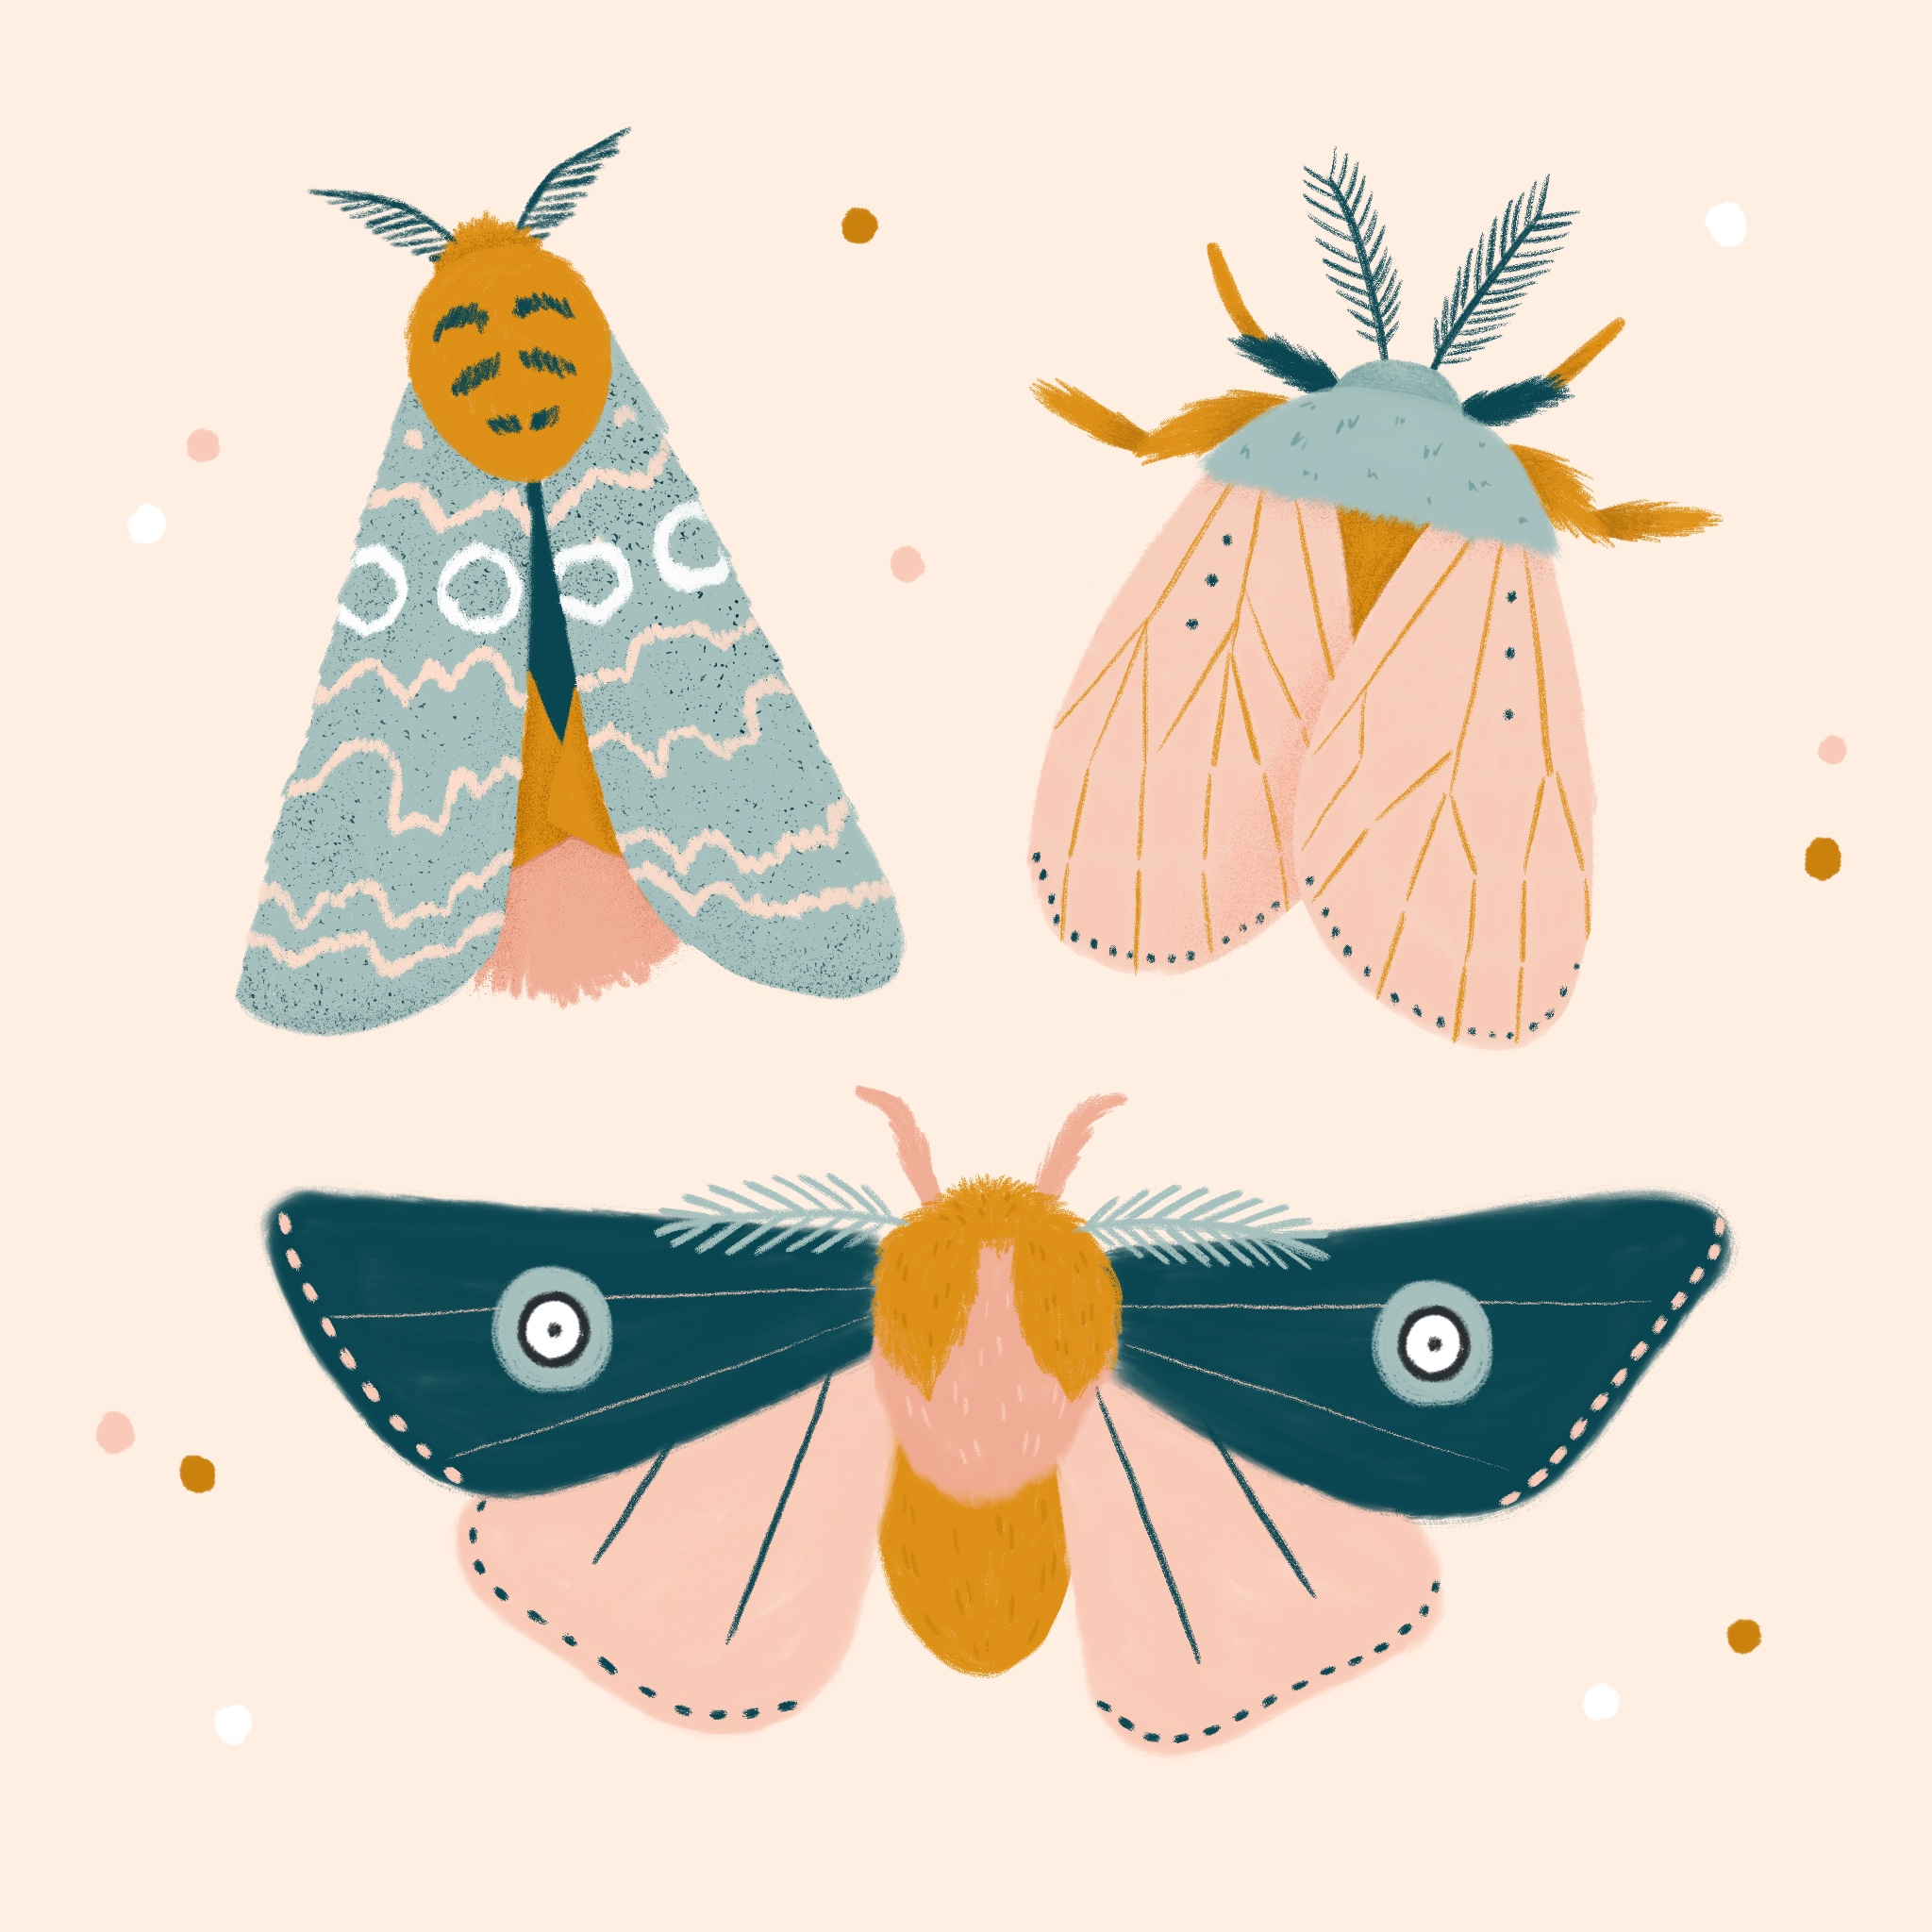 An illustration of three moths with different wing patterns